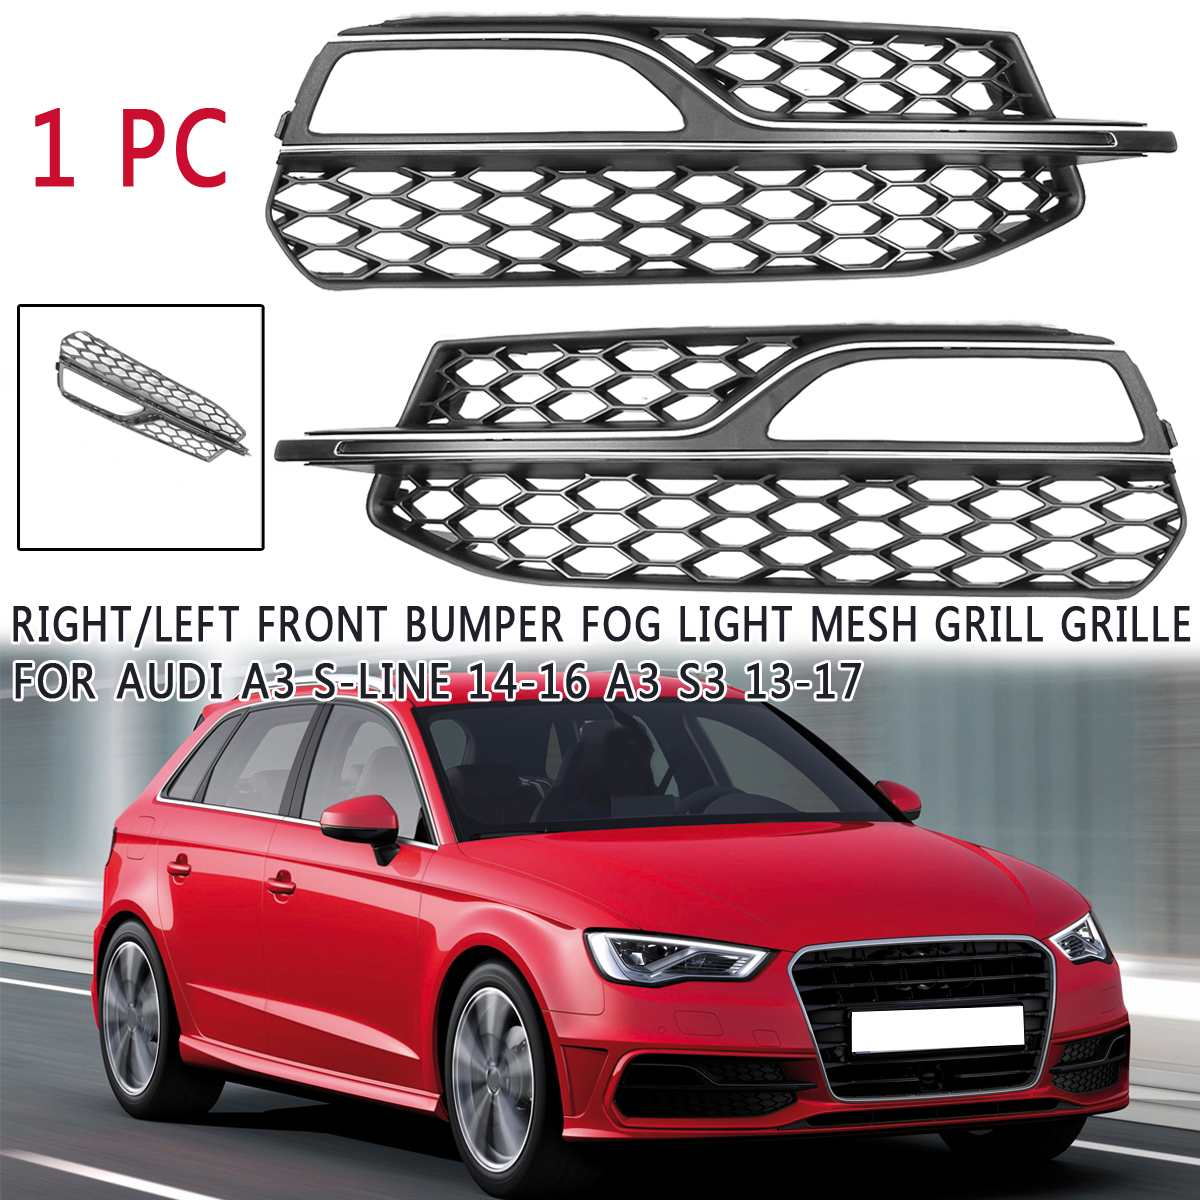 ABS Front Bumper Fog Light Grilles Grill For <font><b>Audi</b></font> <font><b>A3</b></font> S3 2013 2014 <font><b>2015</b></font> 2016 2017 for <font><b>A3</b></font> S-Line 2014 <font><b>2015</b></font> 2016 Car-styling image